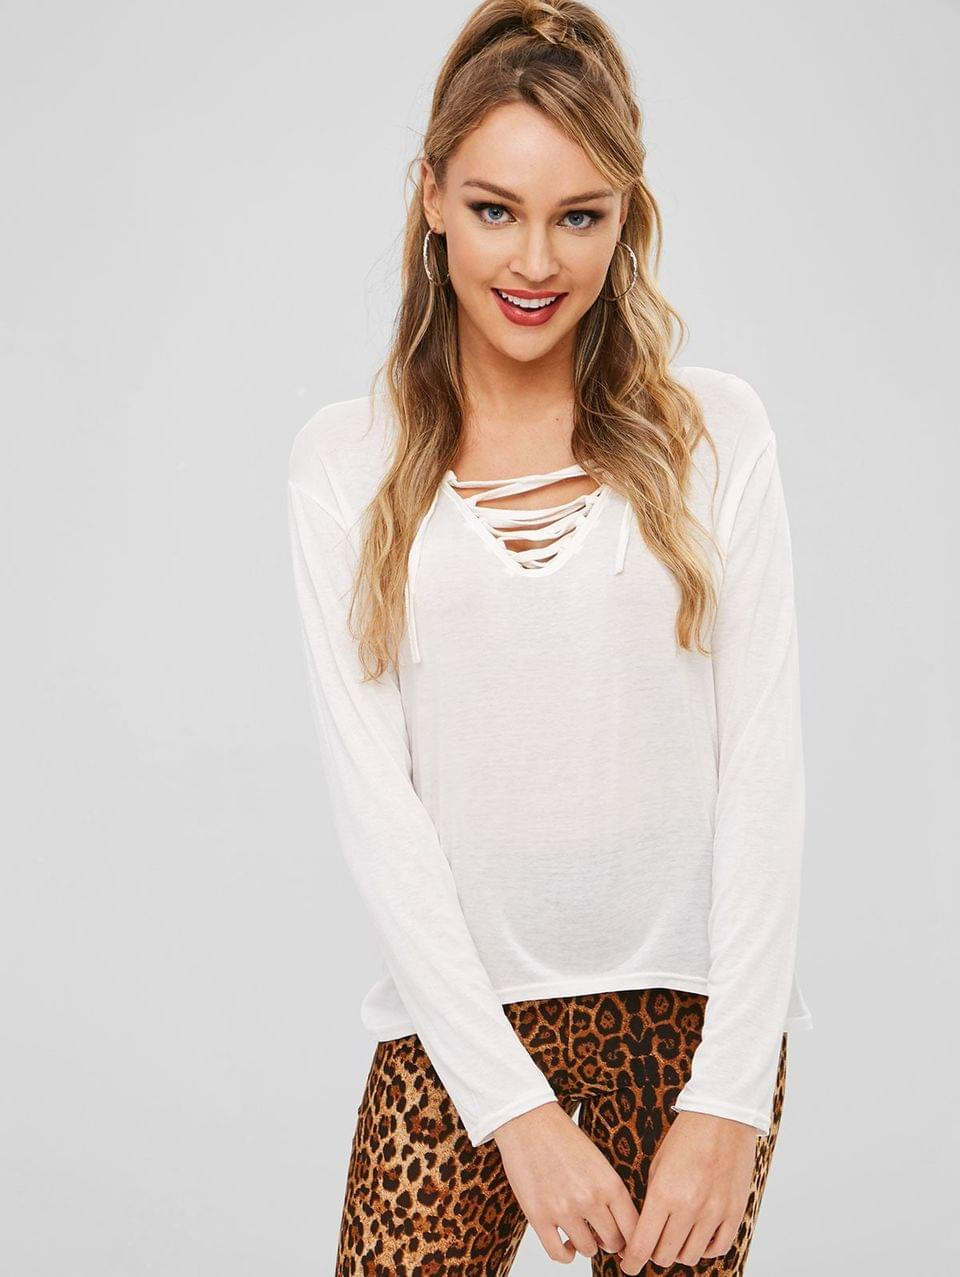 Women's Lace Up Long Sleeve Tee - White Xl